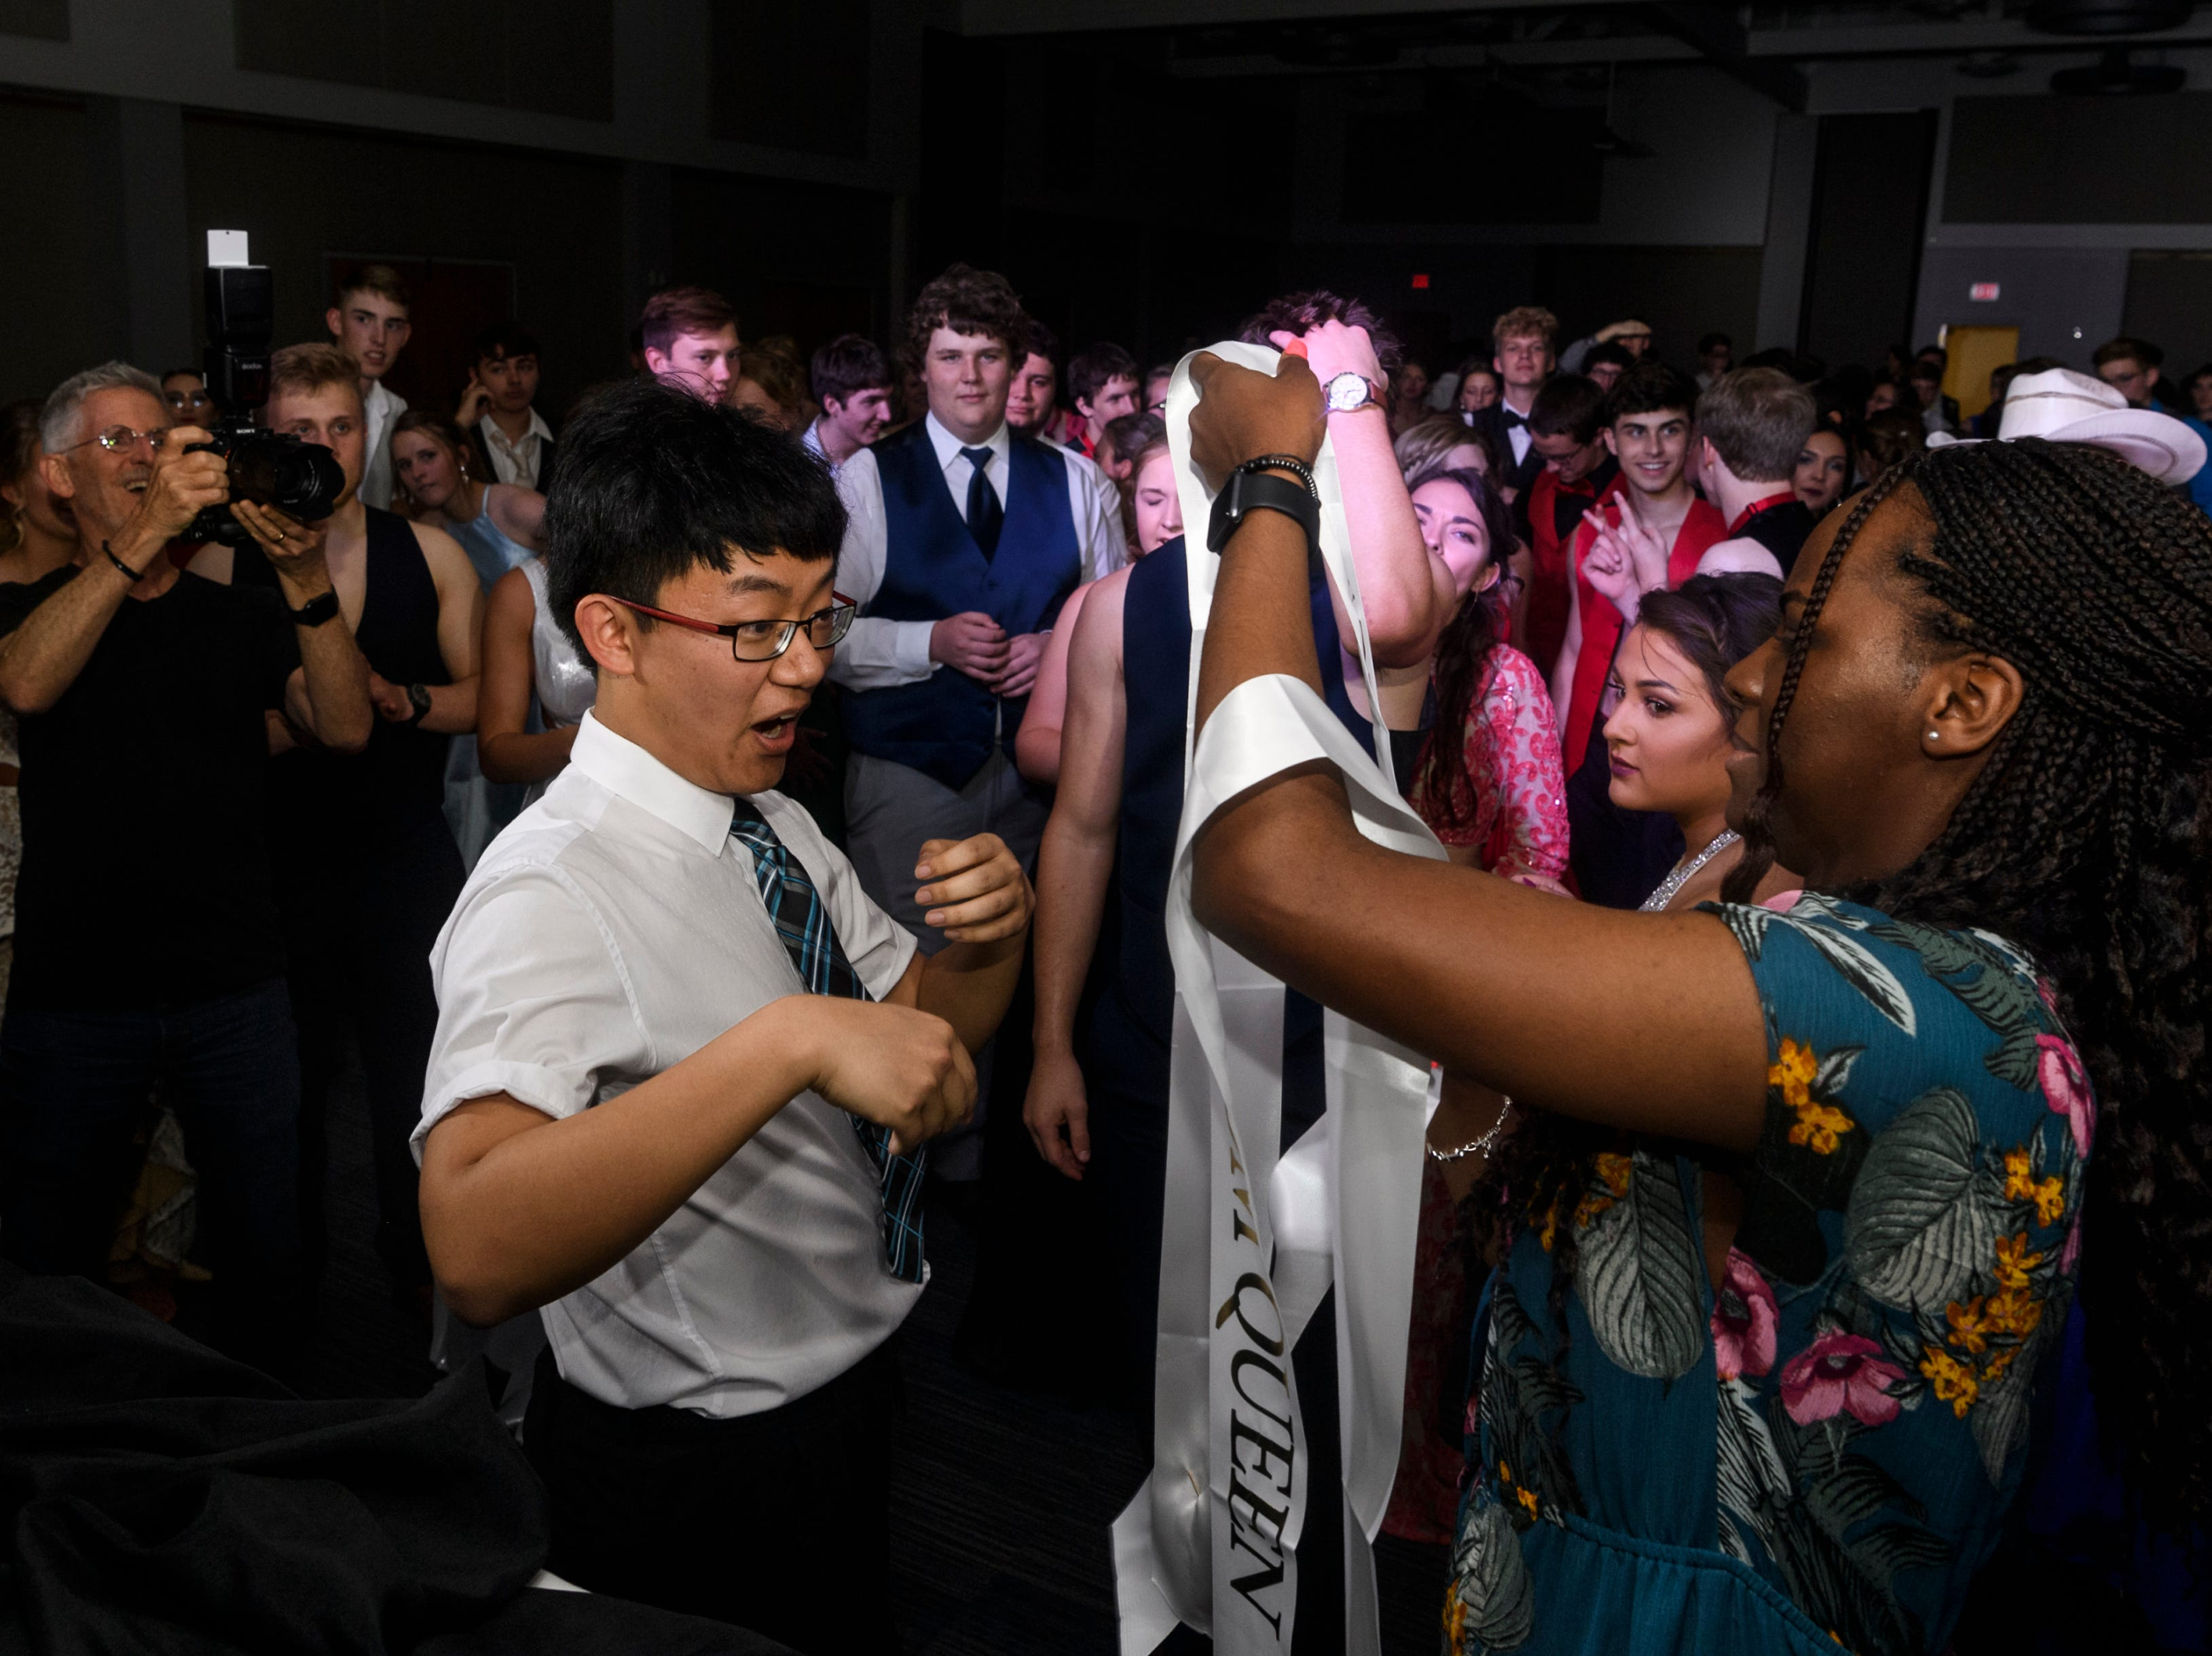 Mt. Vernon senior Yuxuan Bai reacts to being named prom king during prom held inside the University of Southern Indiana's Carter Hall in Evansville, Ind., Saturday, May 4, 2019.